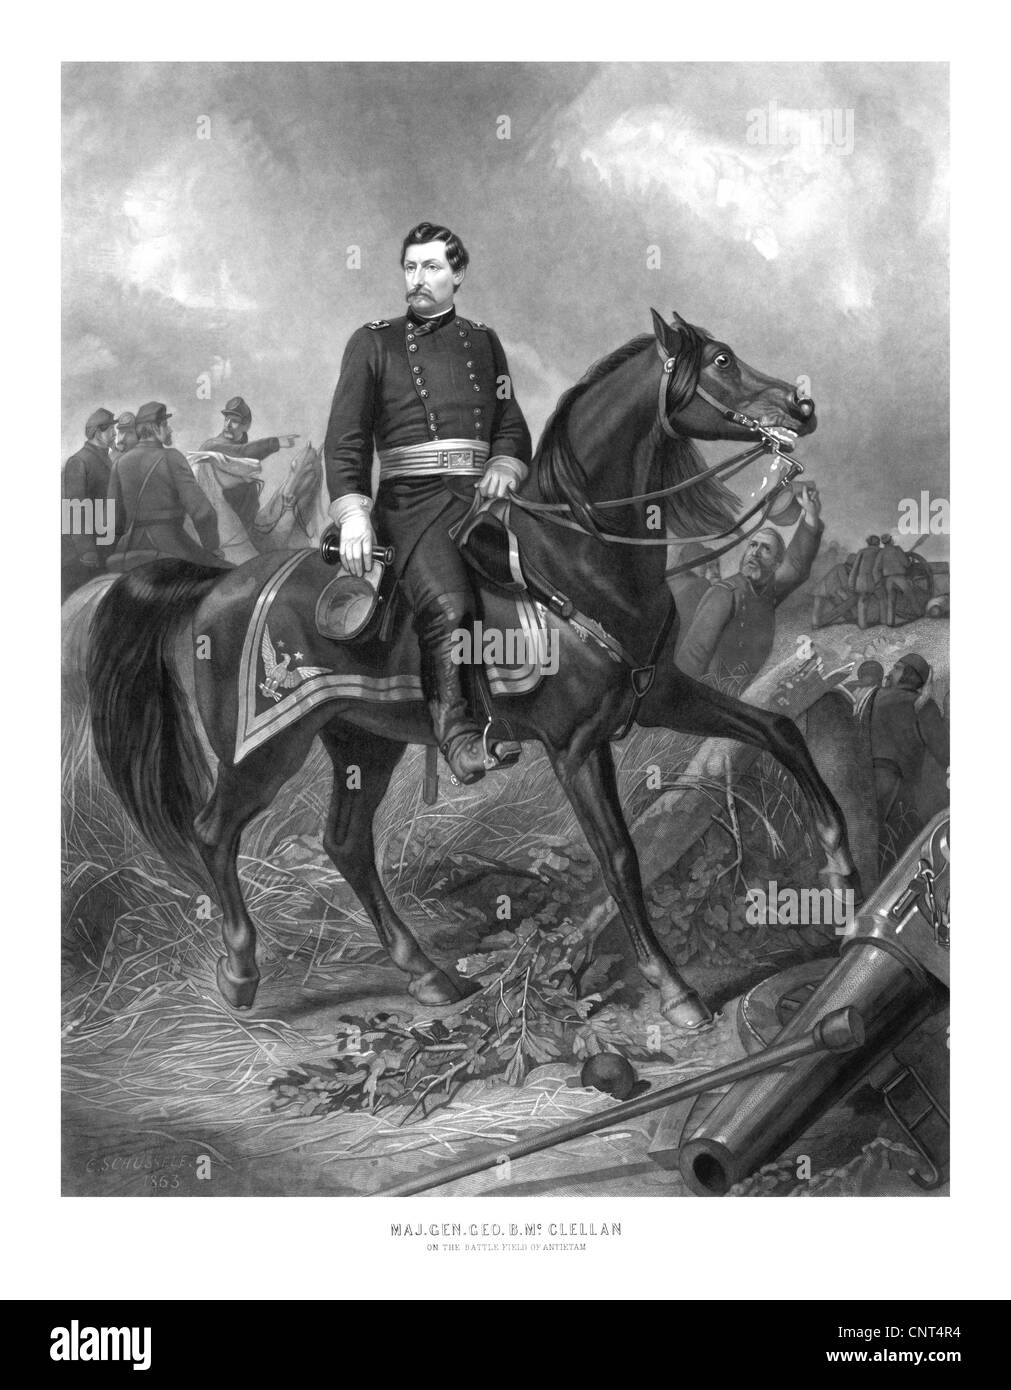 Vintage Civil War print of Union General George McClellan on horseback. Stock Photo